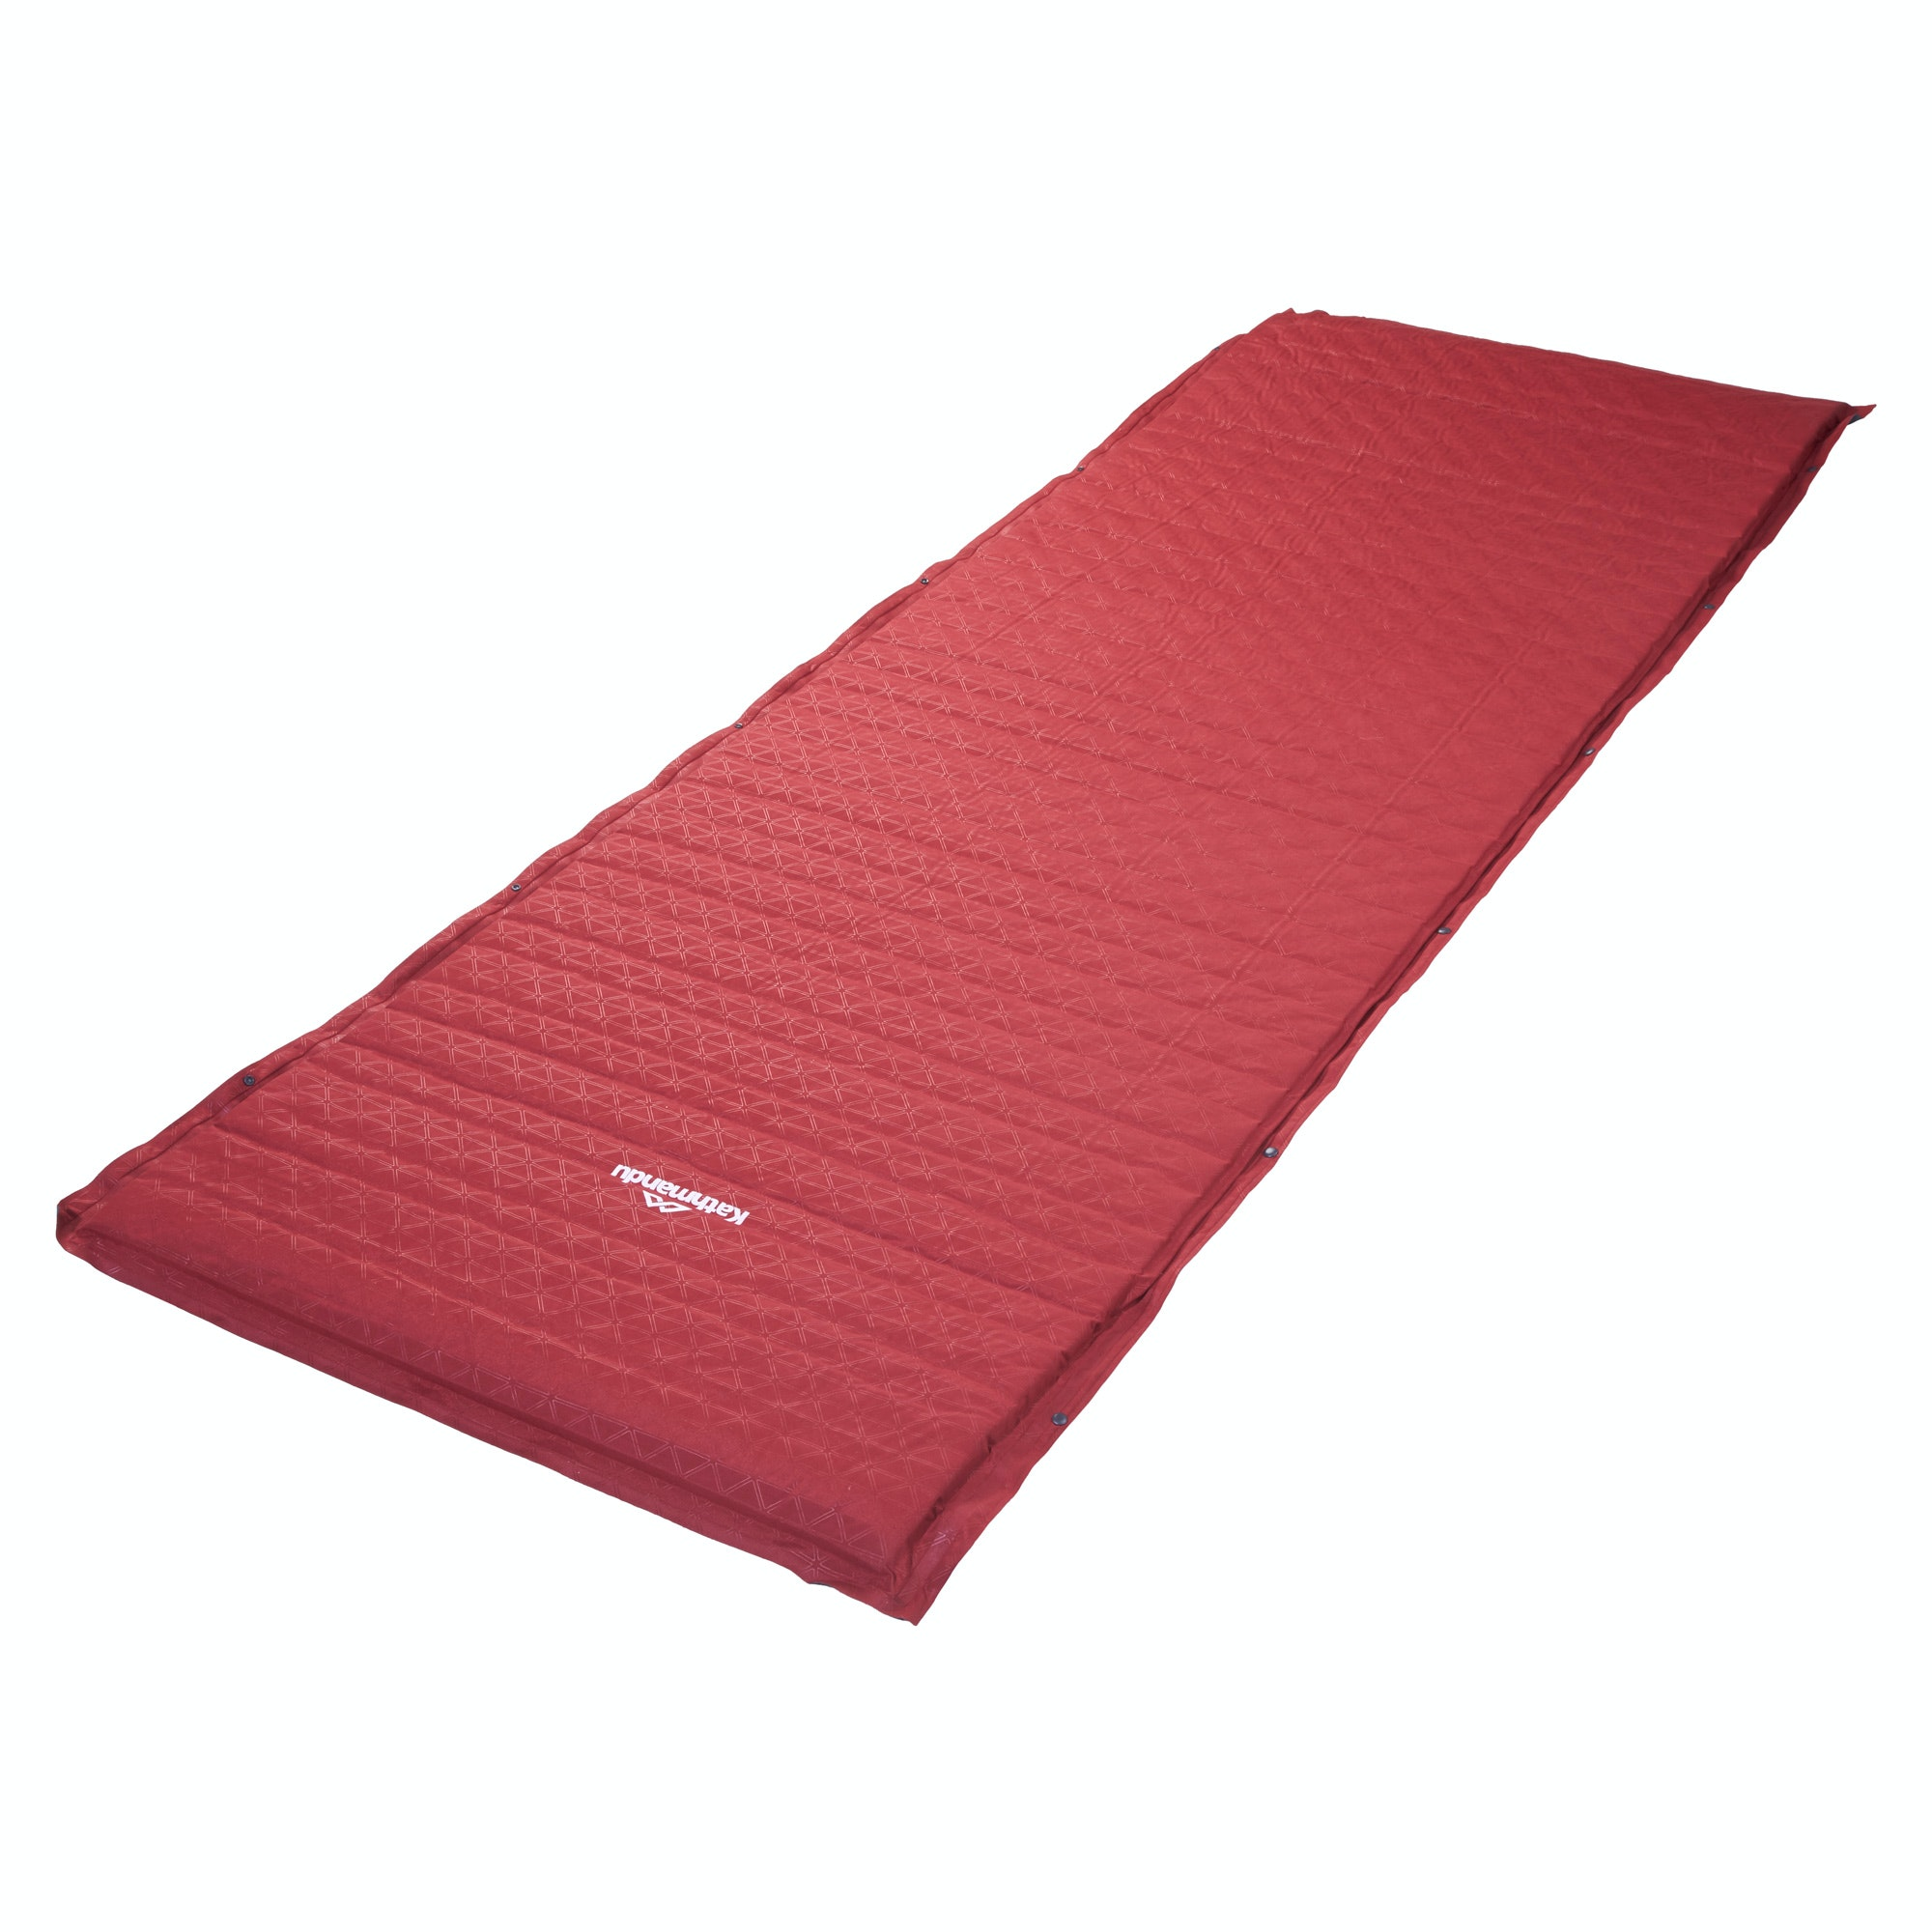 Cabana 75 mm Self-Inflating Mat